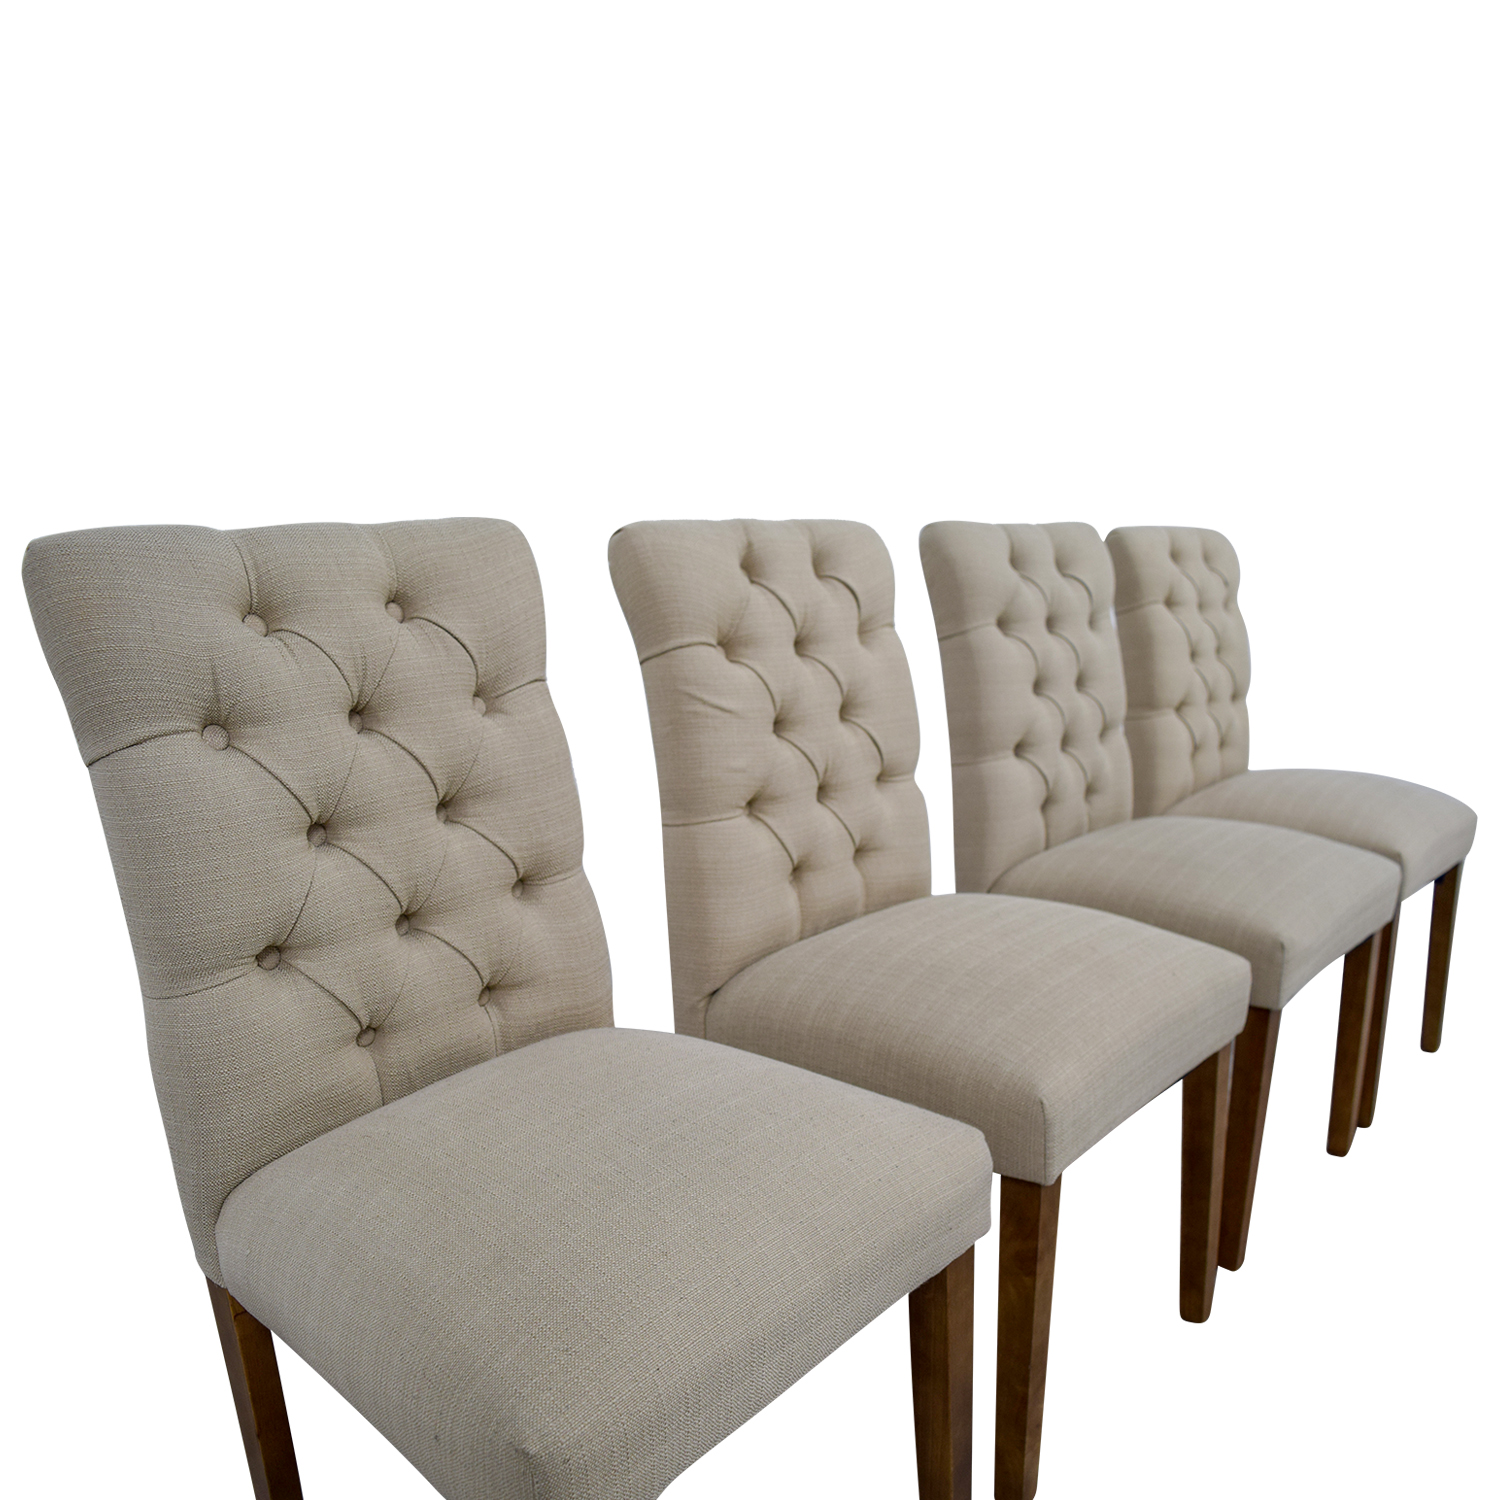 Chairs From Target 67 Off Target Target Brookline Threshold Tan Tufted